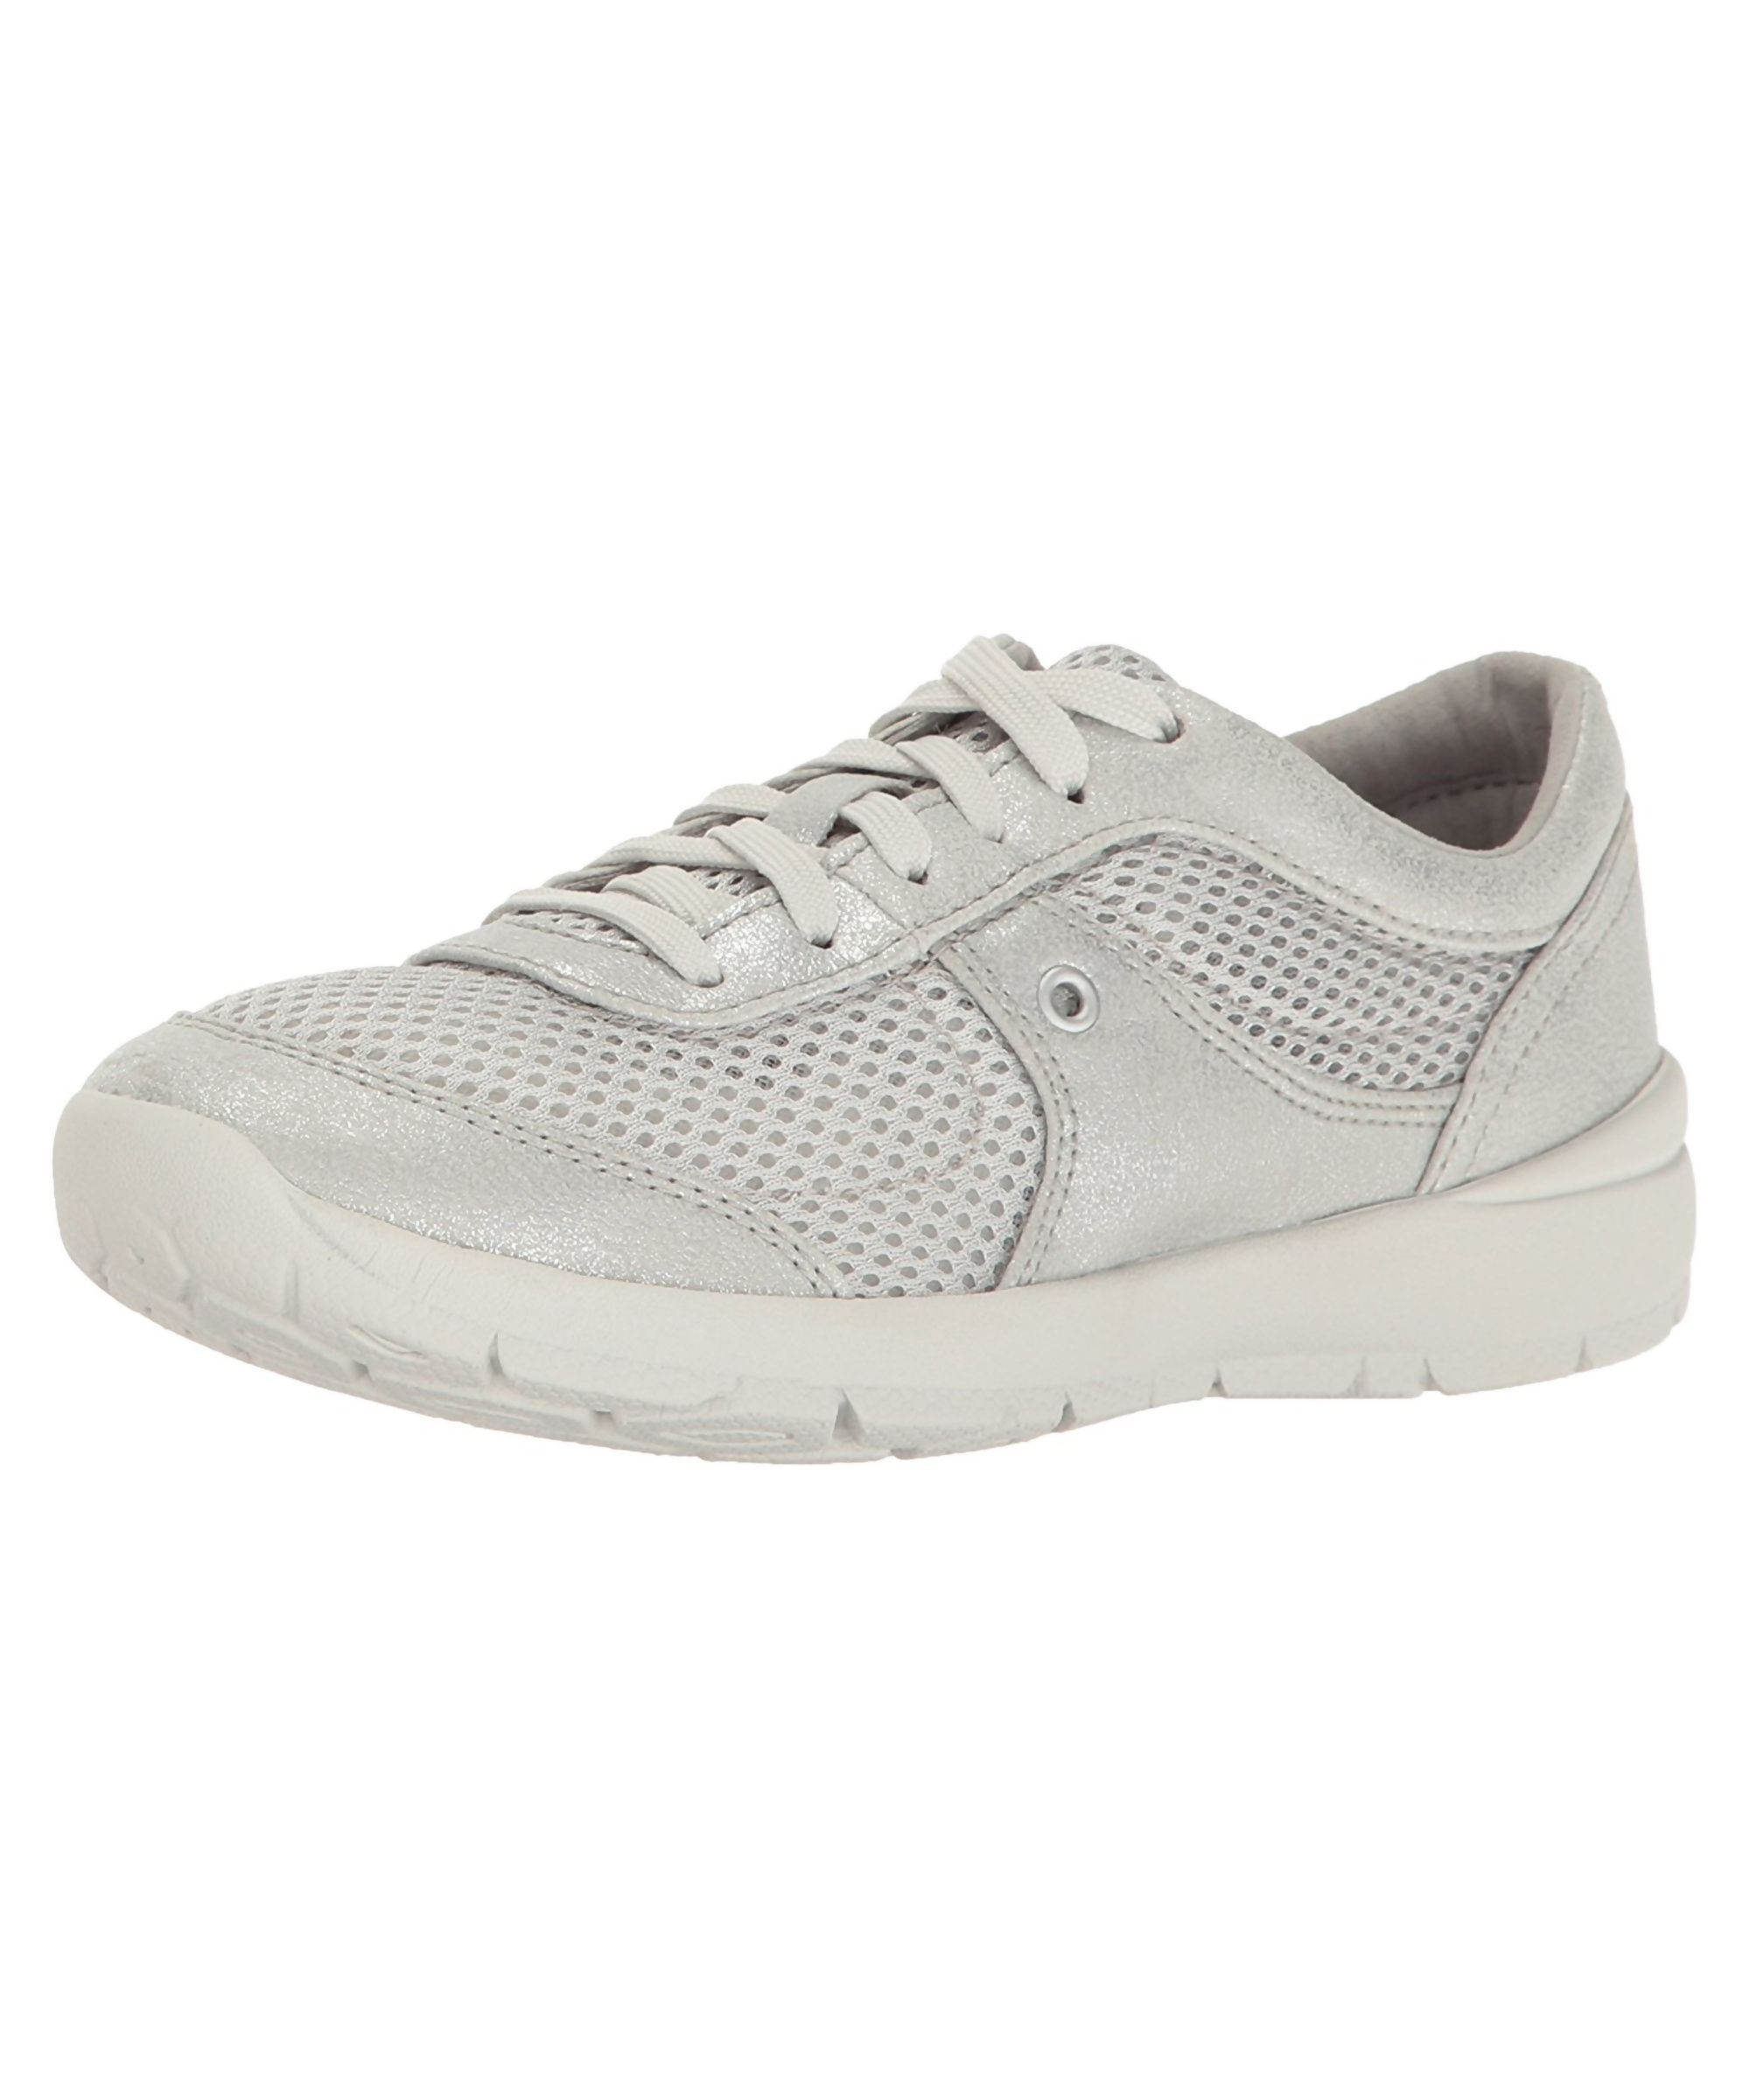 Easy Spirit Womens Gogo Low Top Lace Up Fashion Sneakers